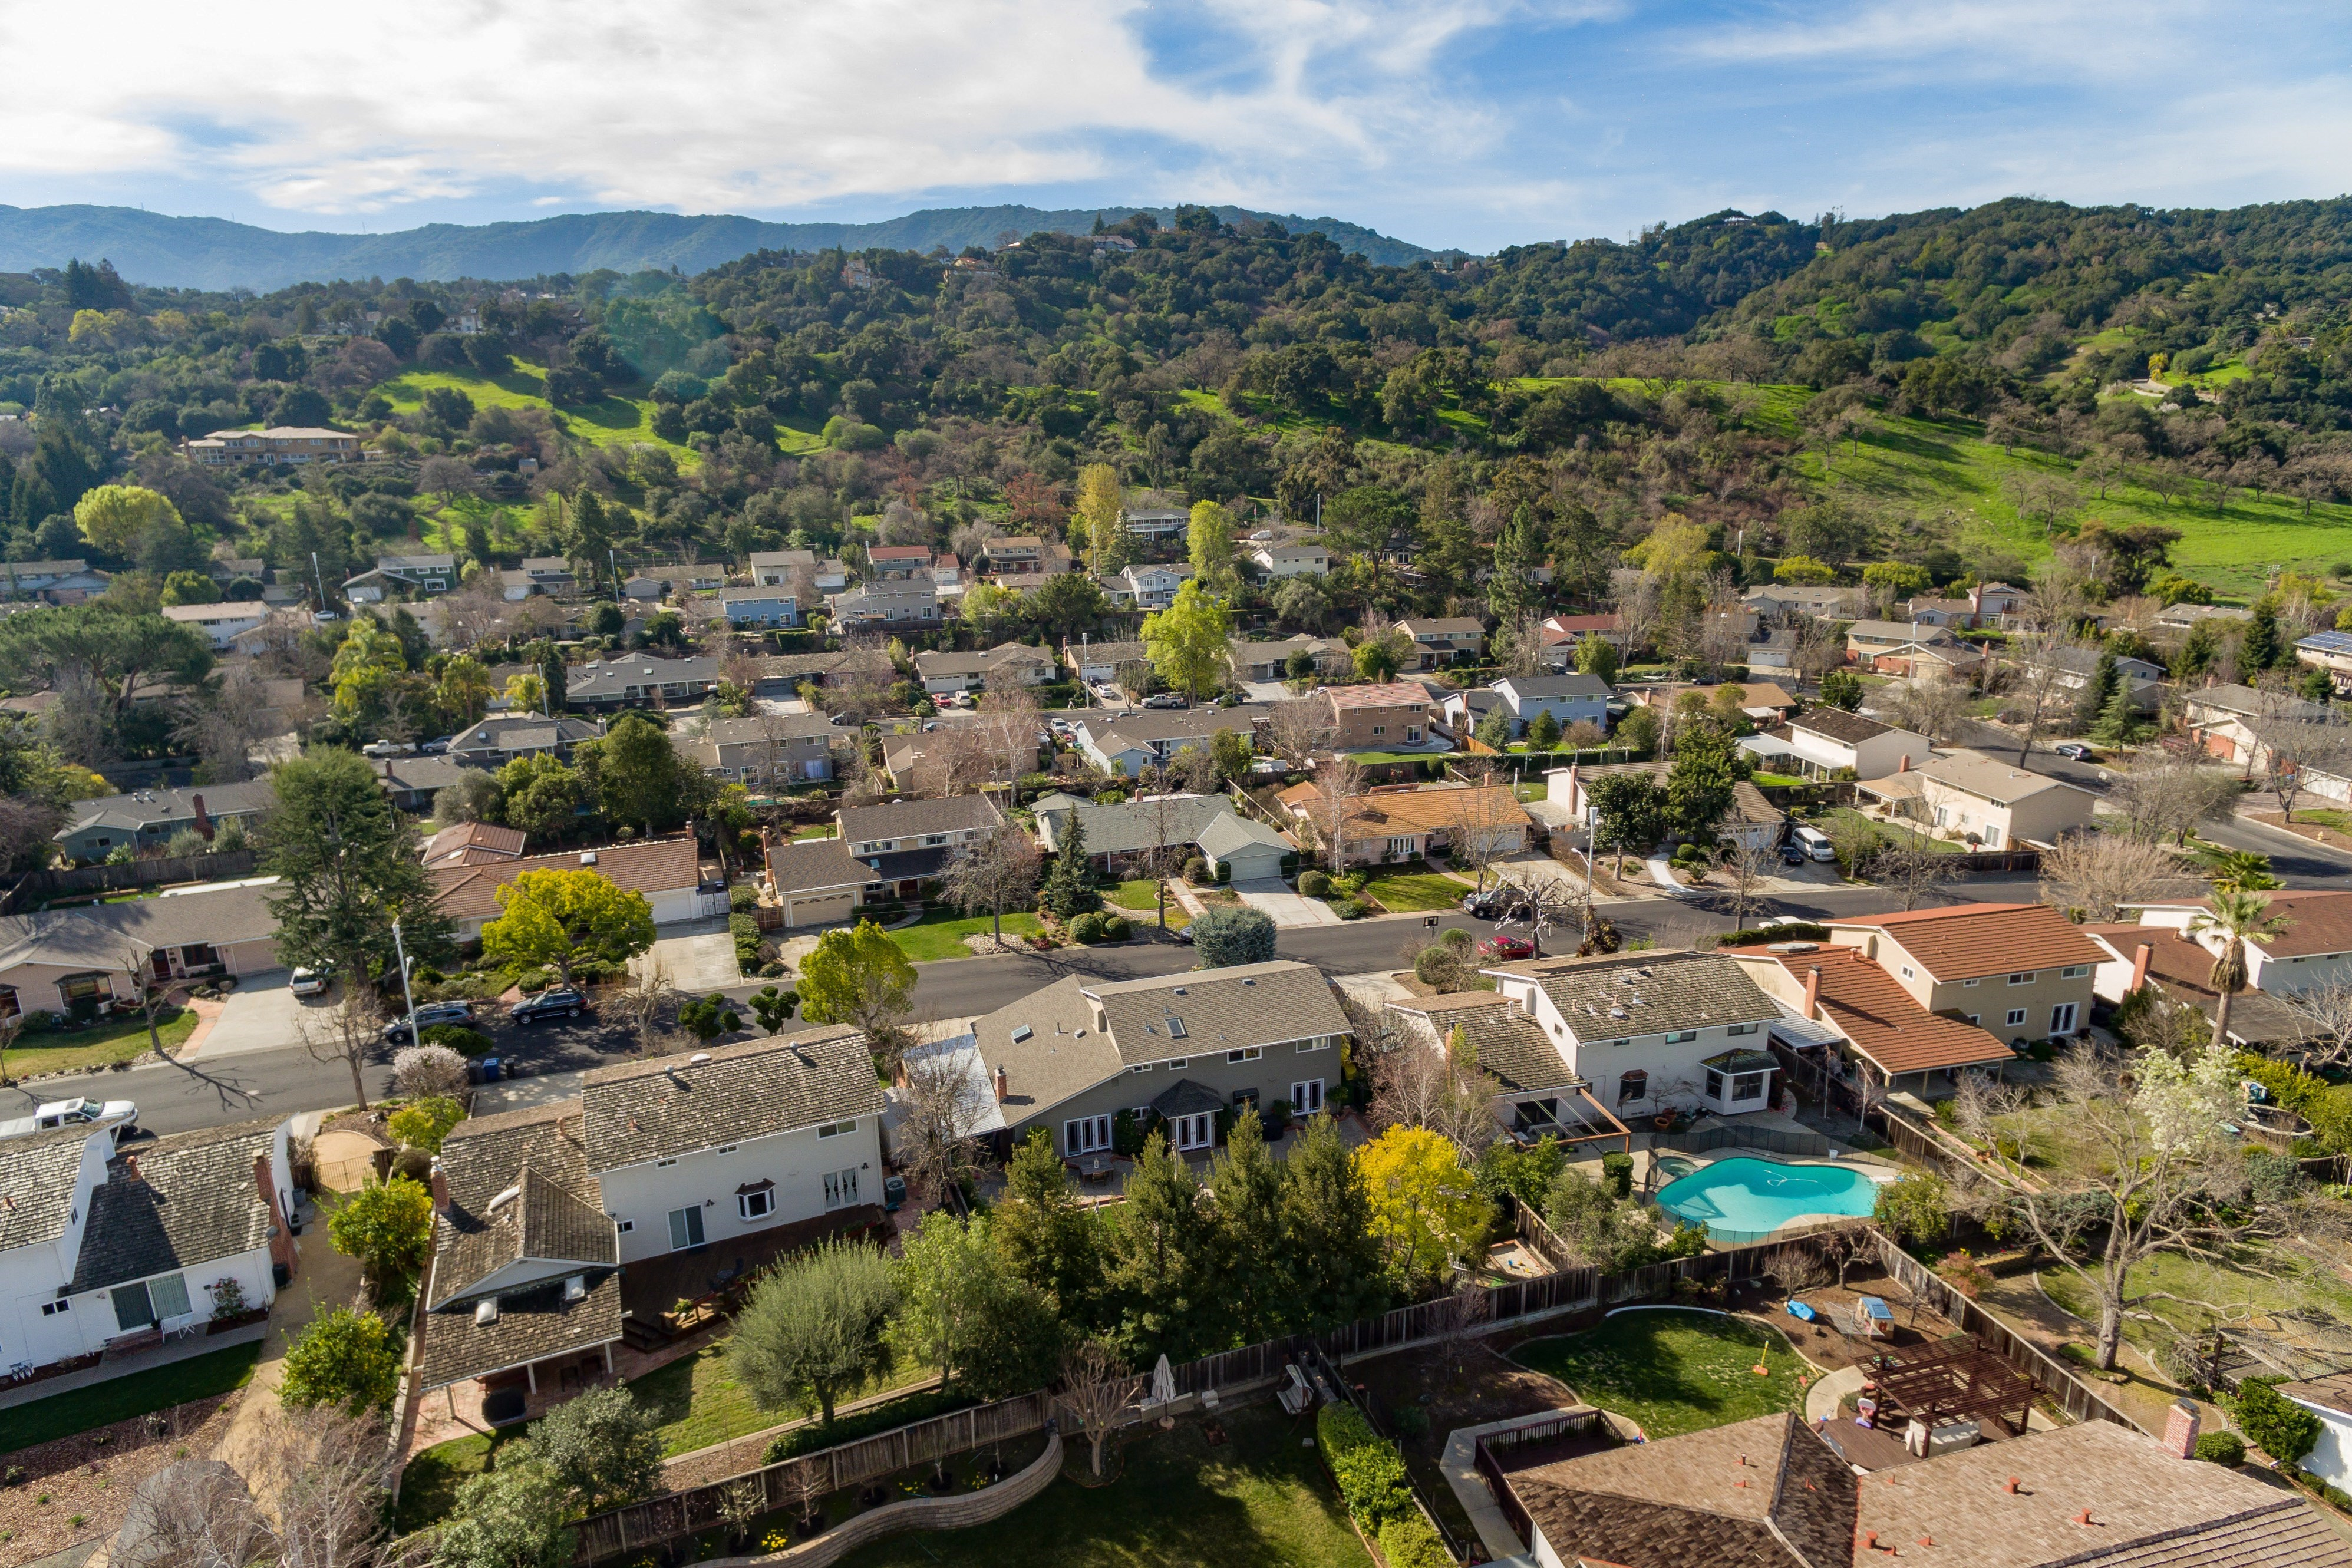 033 Neighborhood View - Exquisite, expansive, remodeled Belwood home - 127 Belhaven Drive, Los Gatos